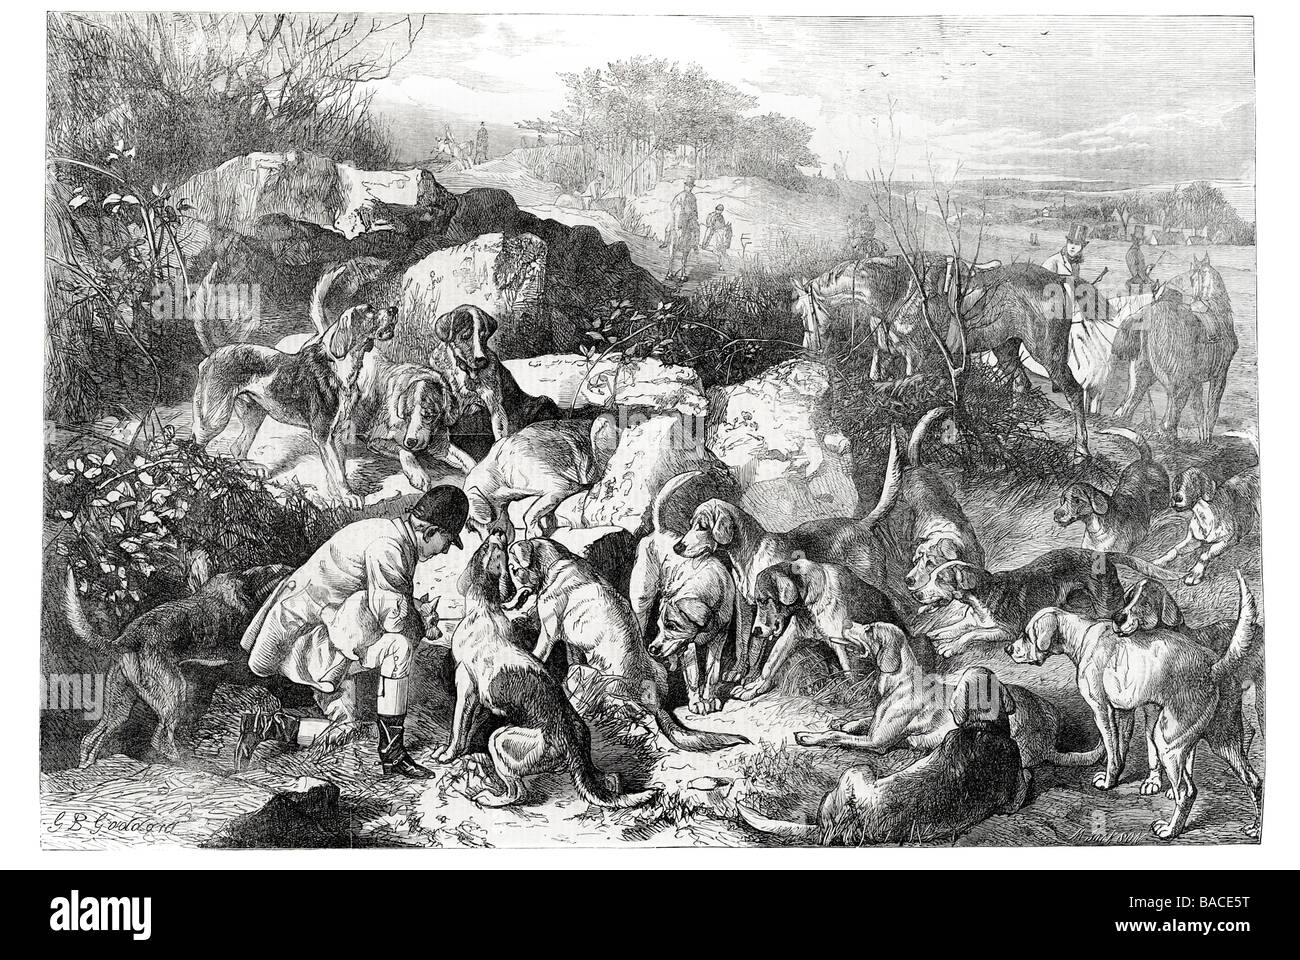 gone to ground drawn by g b goddard Fox hunting tracking chase killing 1867 - Stock Image